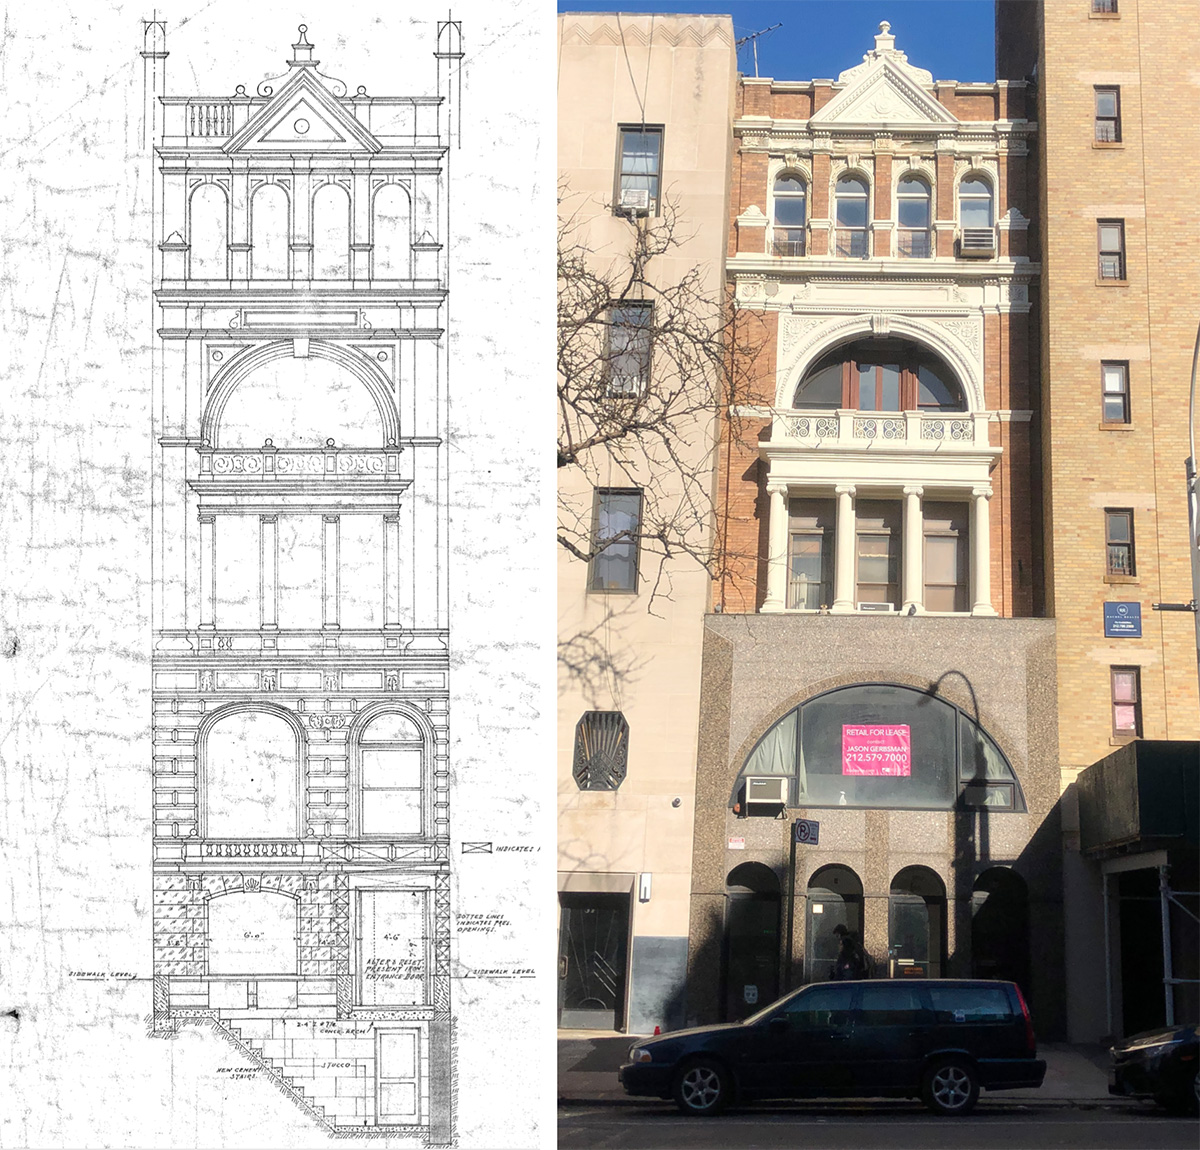 Historic conditions (left) and existing conditions (right) at 55 East 86th Street - Opera Studio Architecture